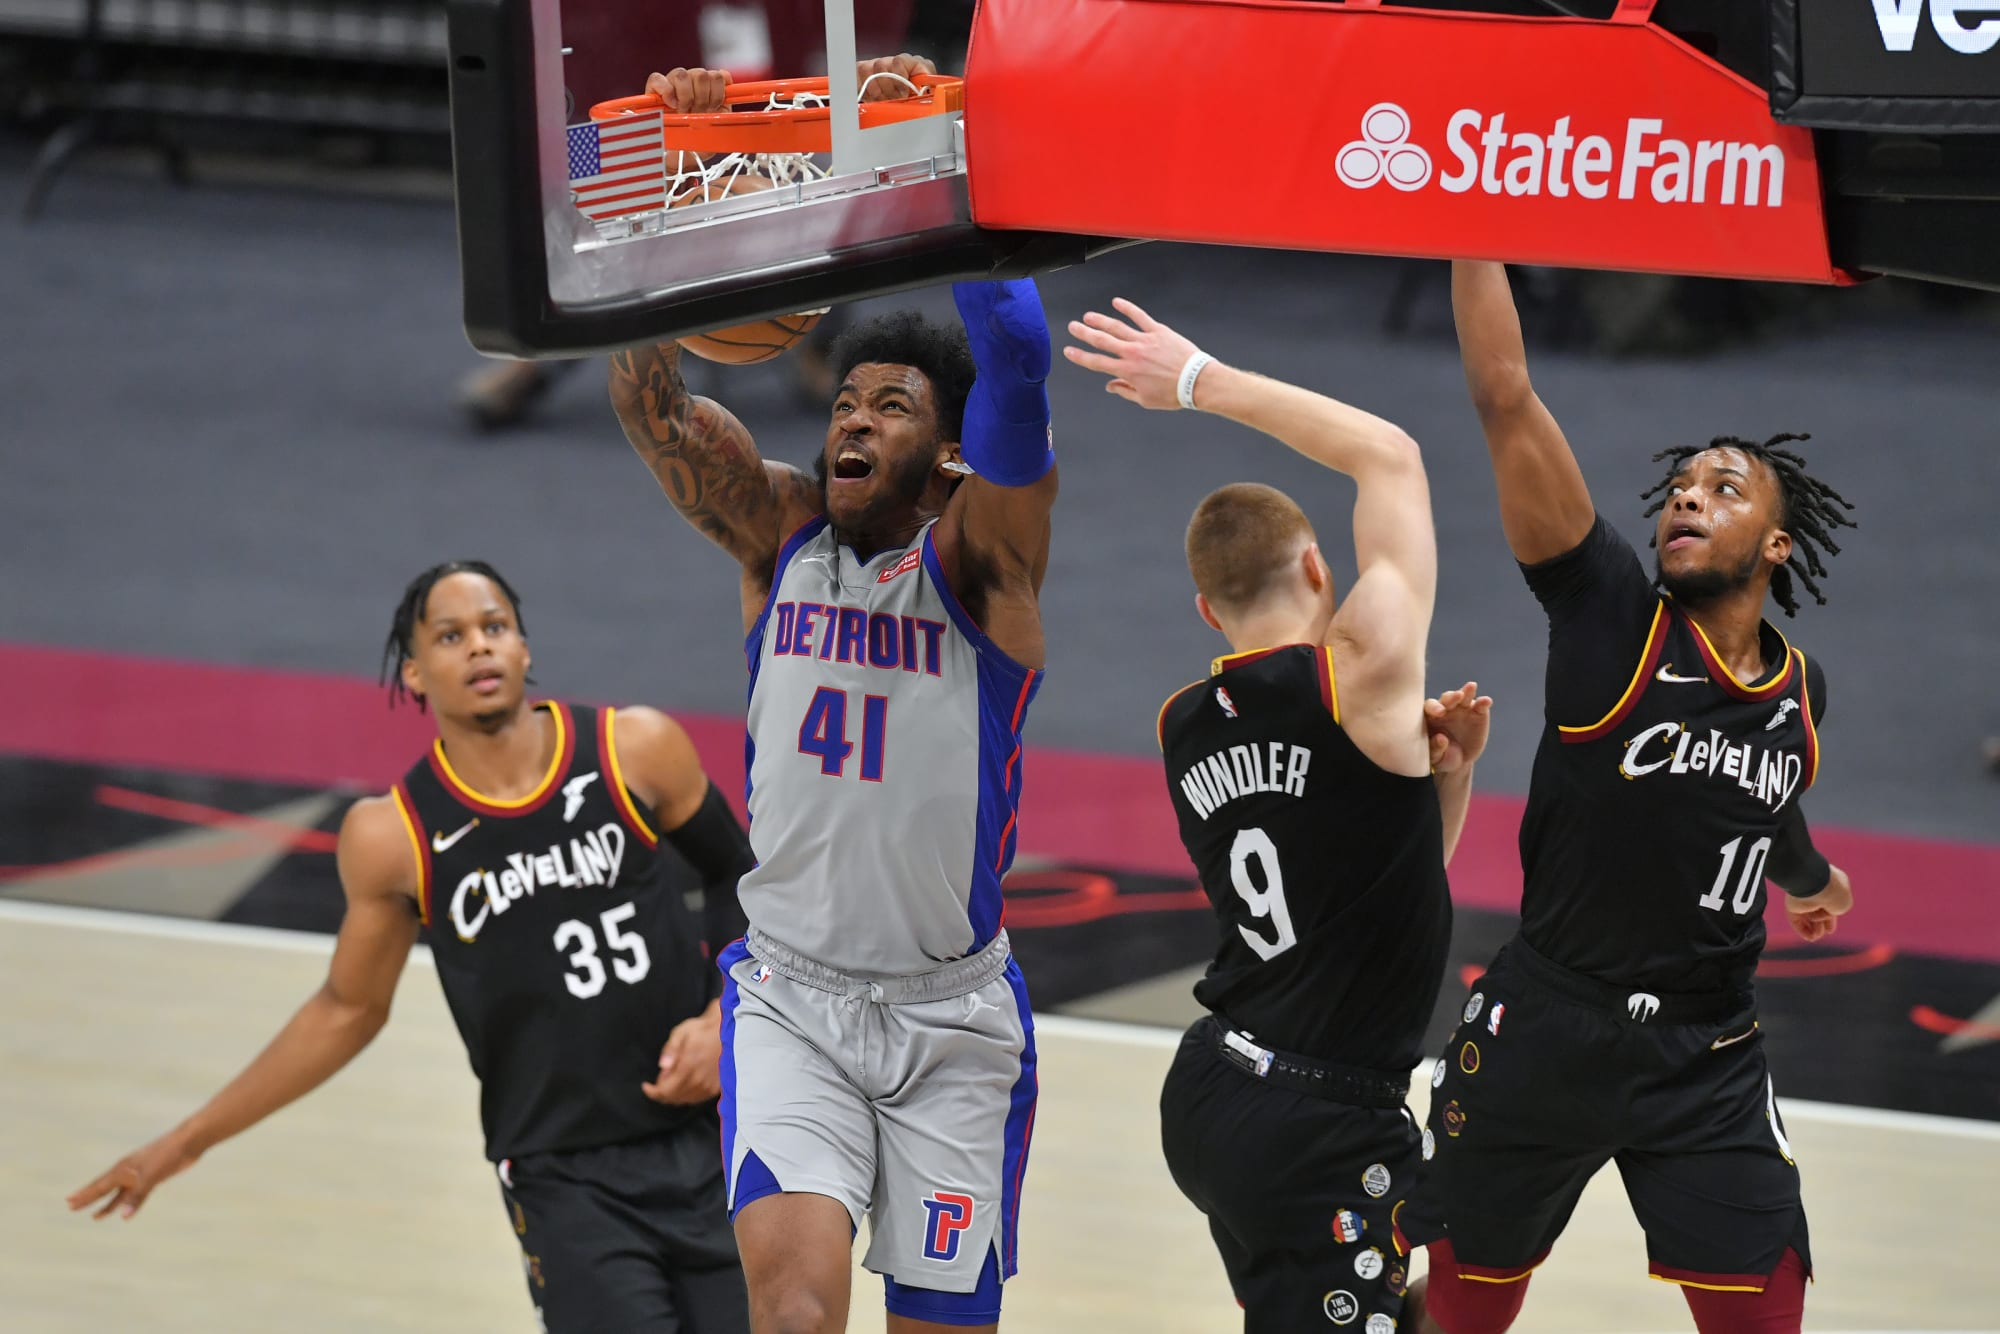 Detroit Pistons: Starting lineup vs. Cavaliers will have fans excited